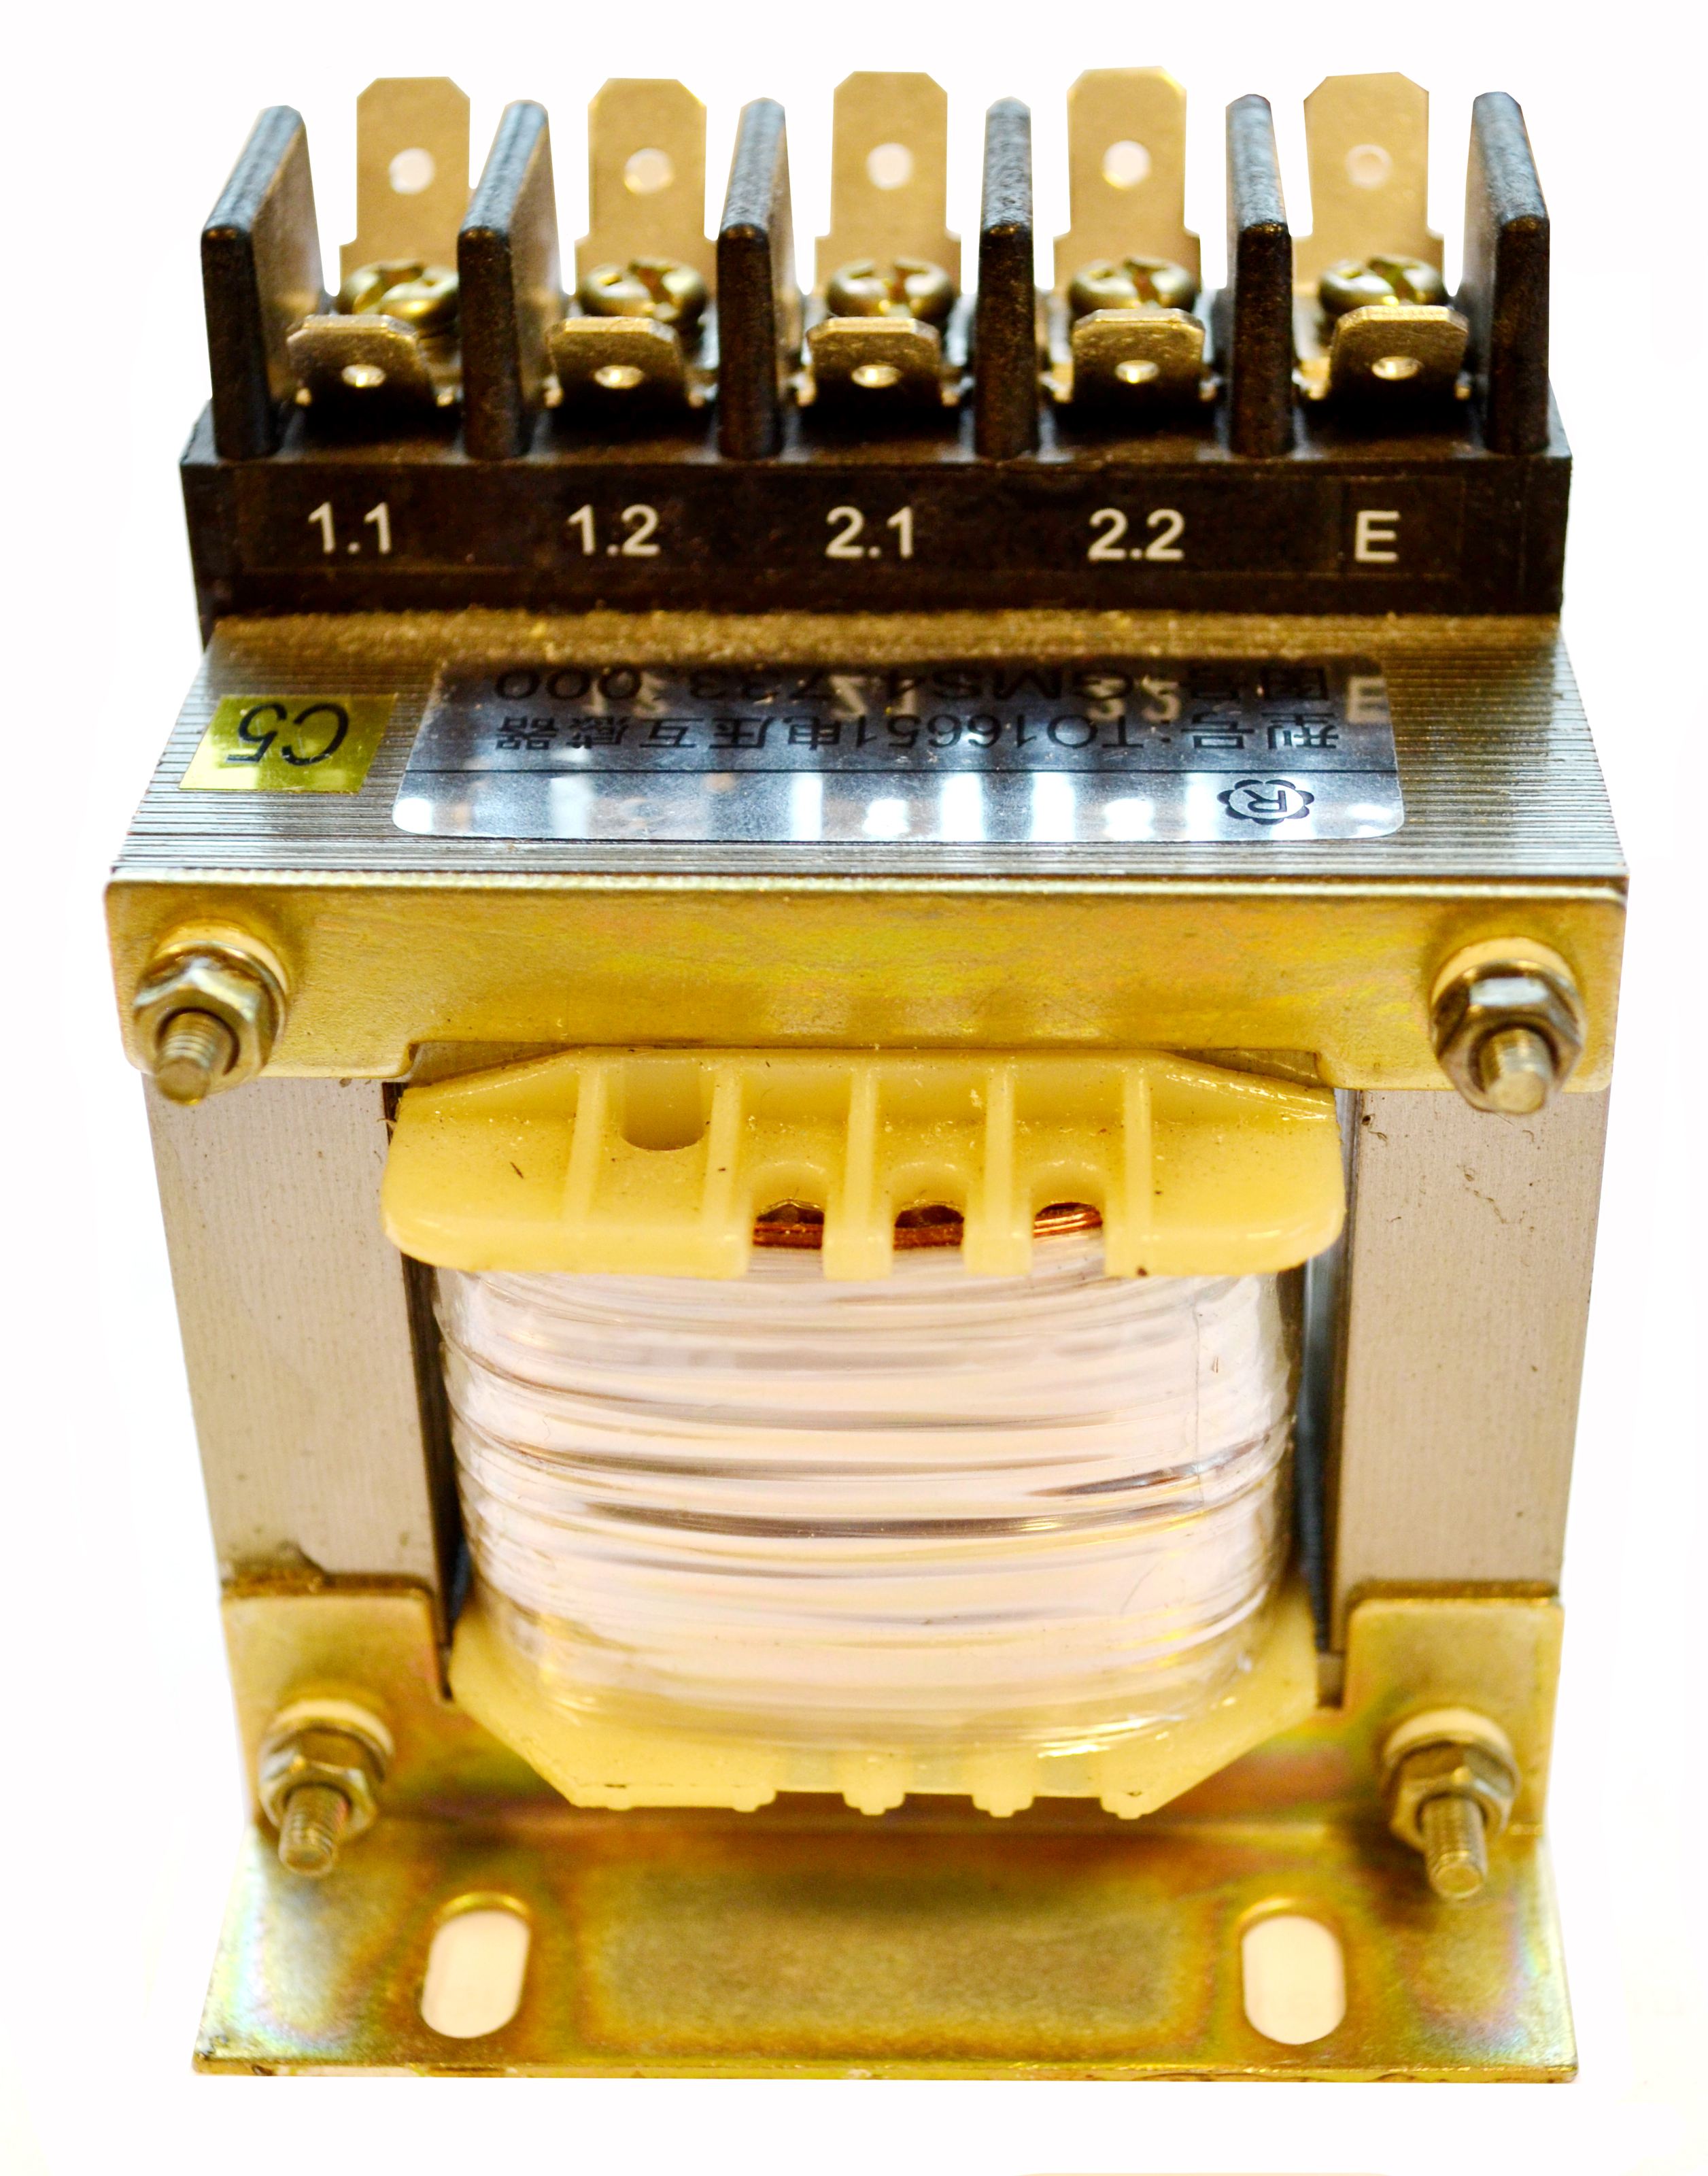 hfc5 measuring transformers t7  t8